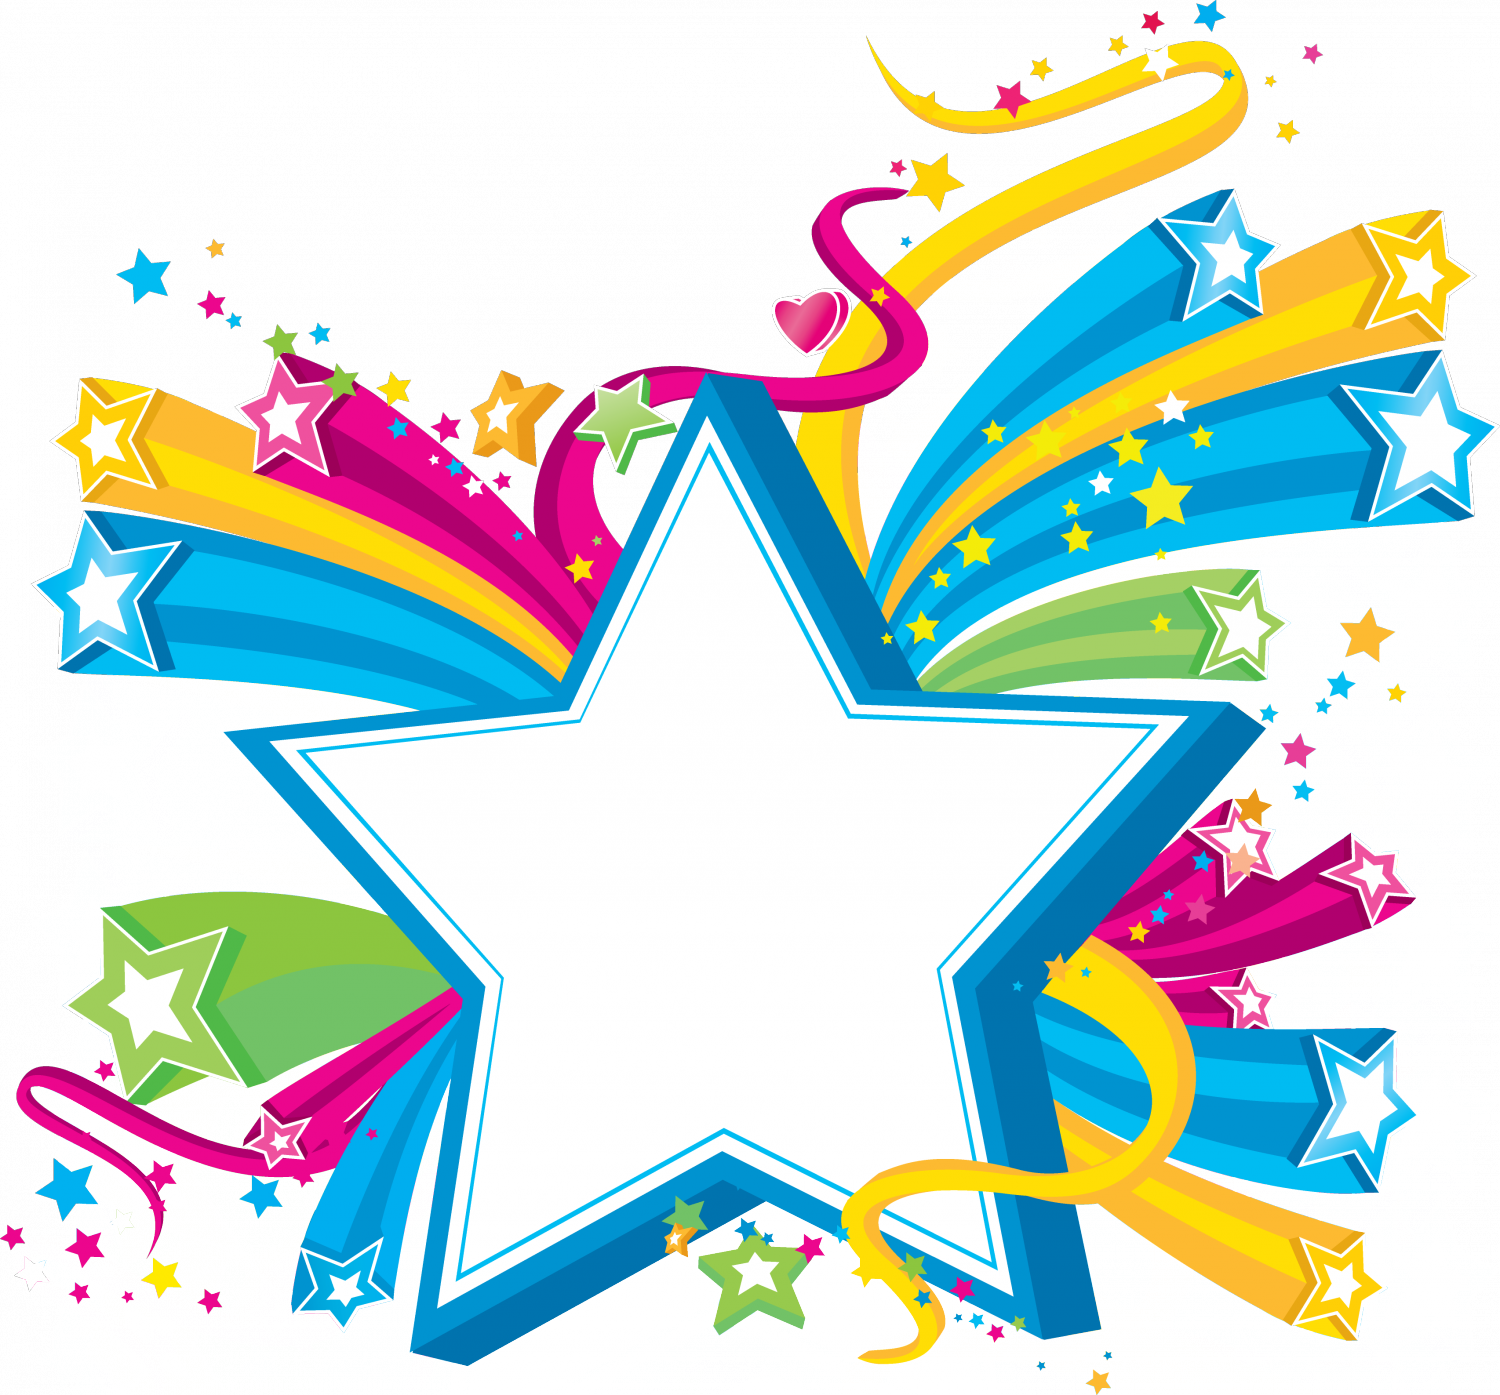 Star free vector download (4,191 Free vector) for ...